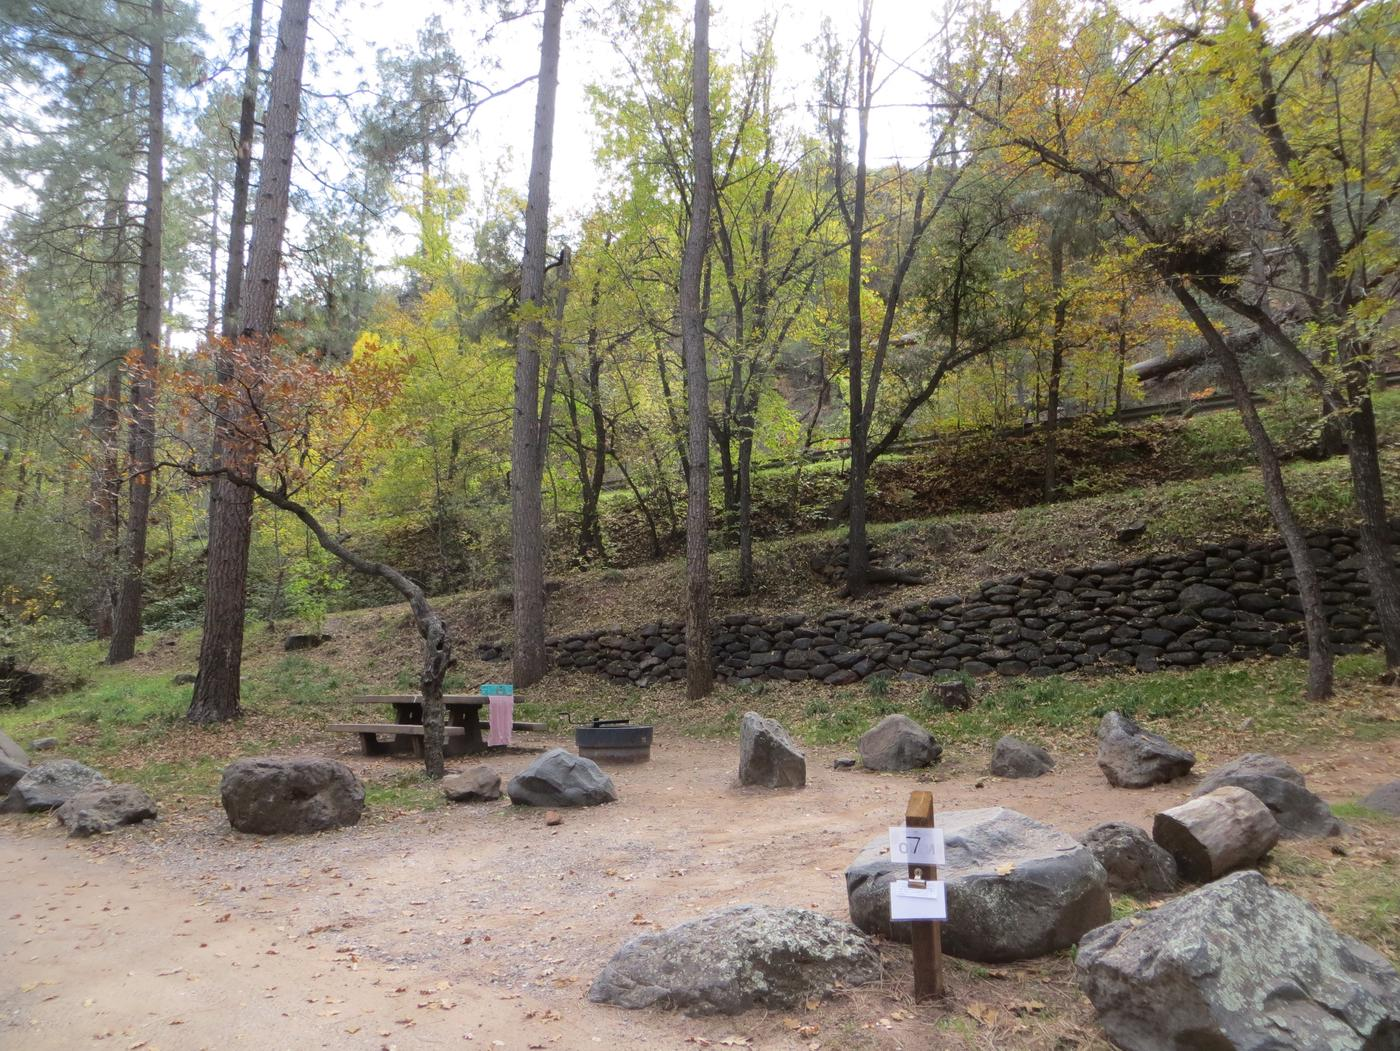 Manzanita Campground site #07 featuring the treed picnic area, camping space, and fire pit.